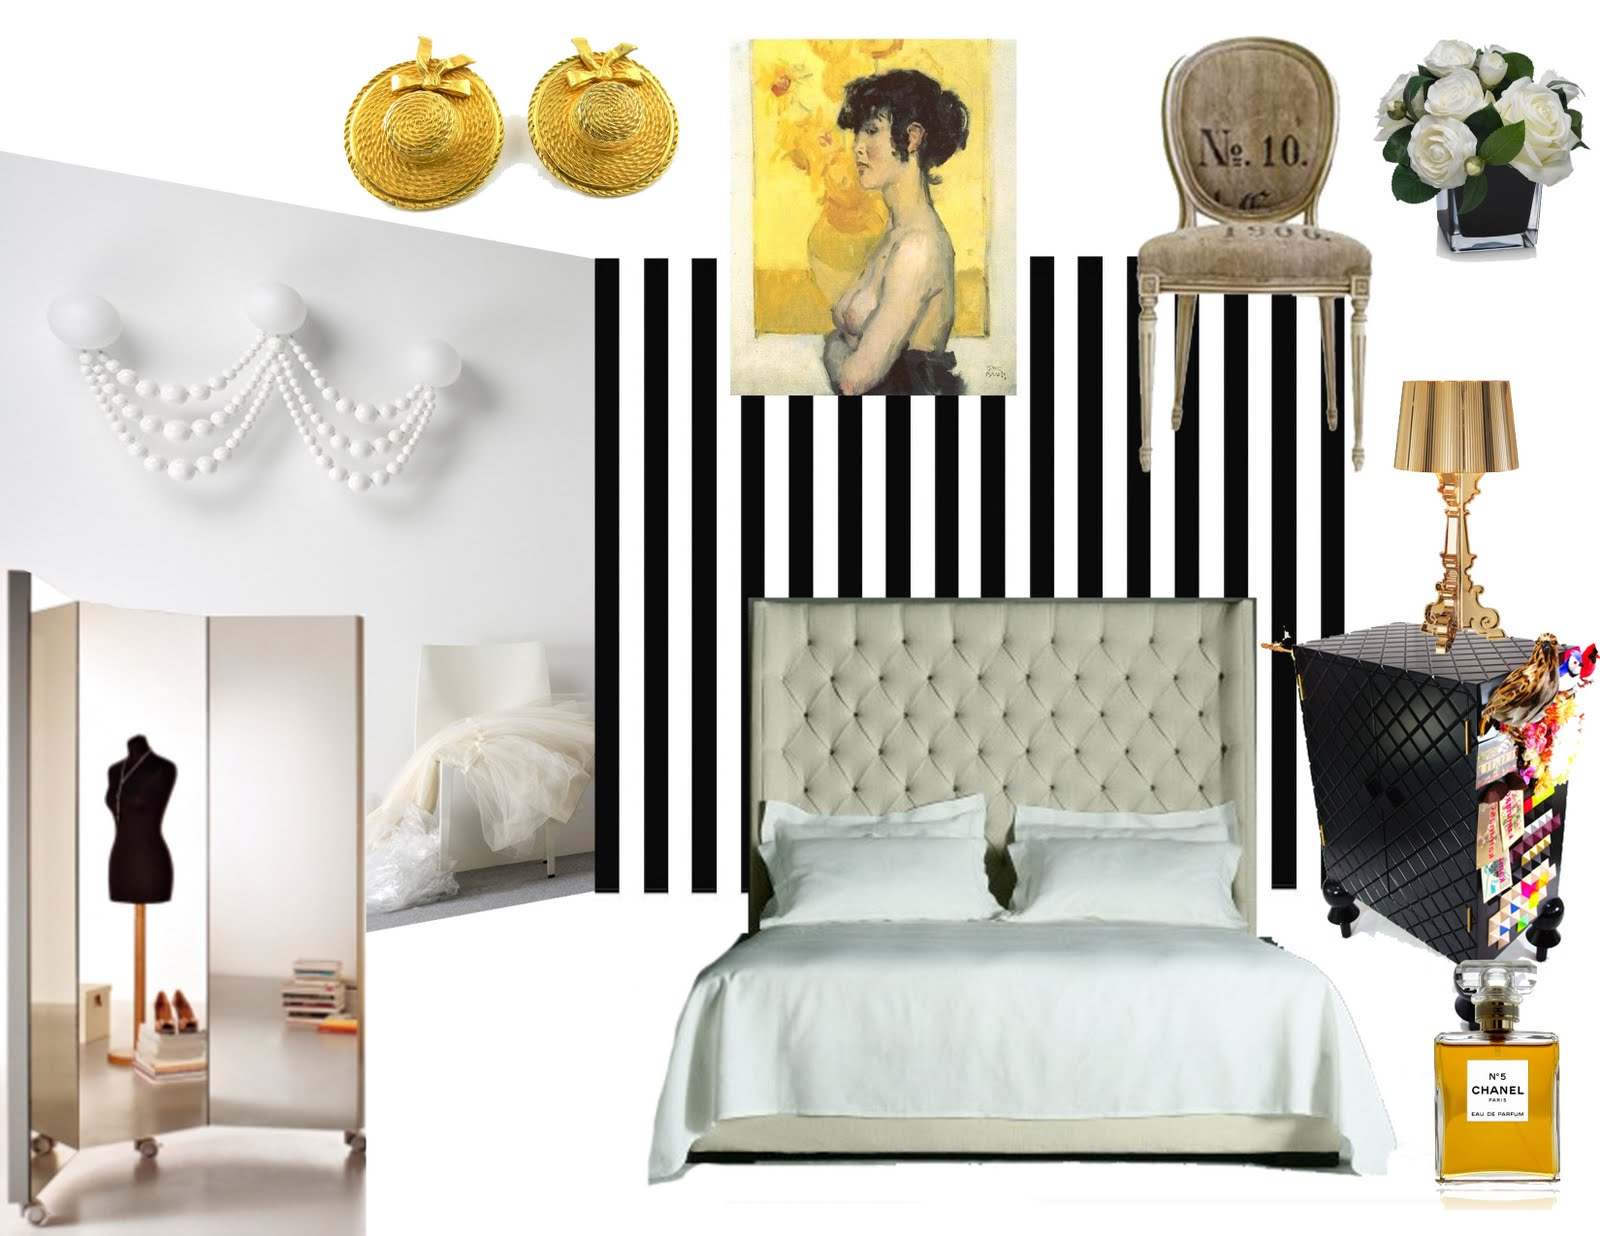 Louis Vuitton Wallpaper For Bedroom Chanel Bedrooms